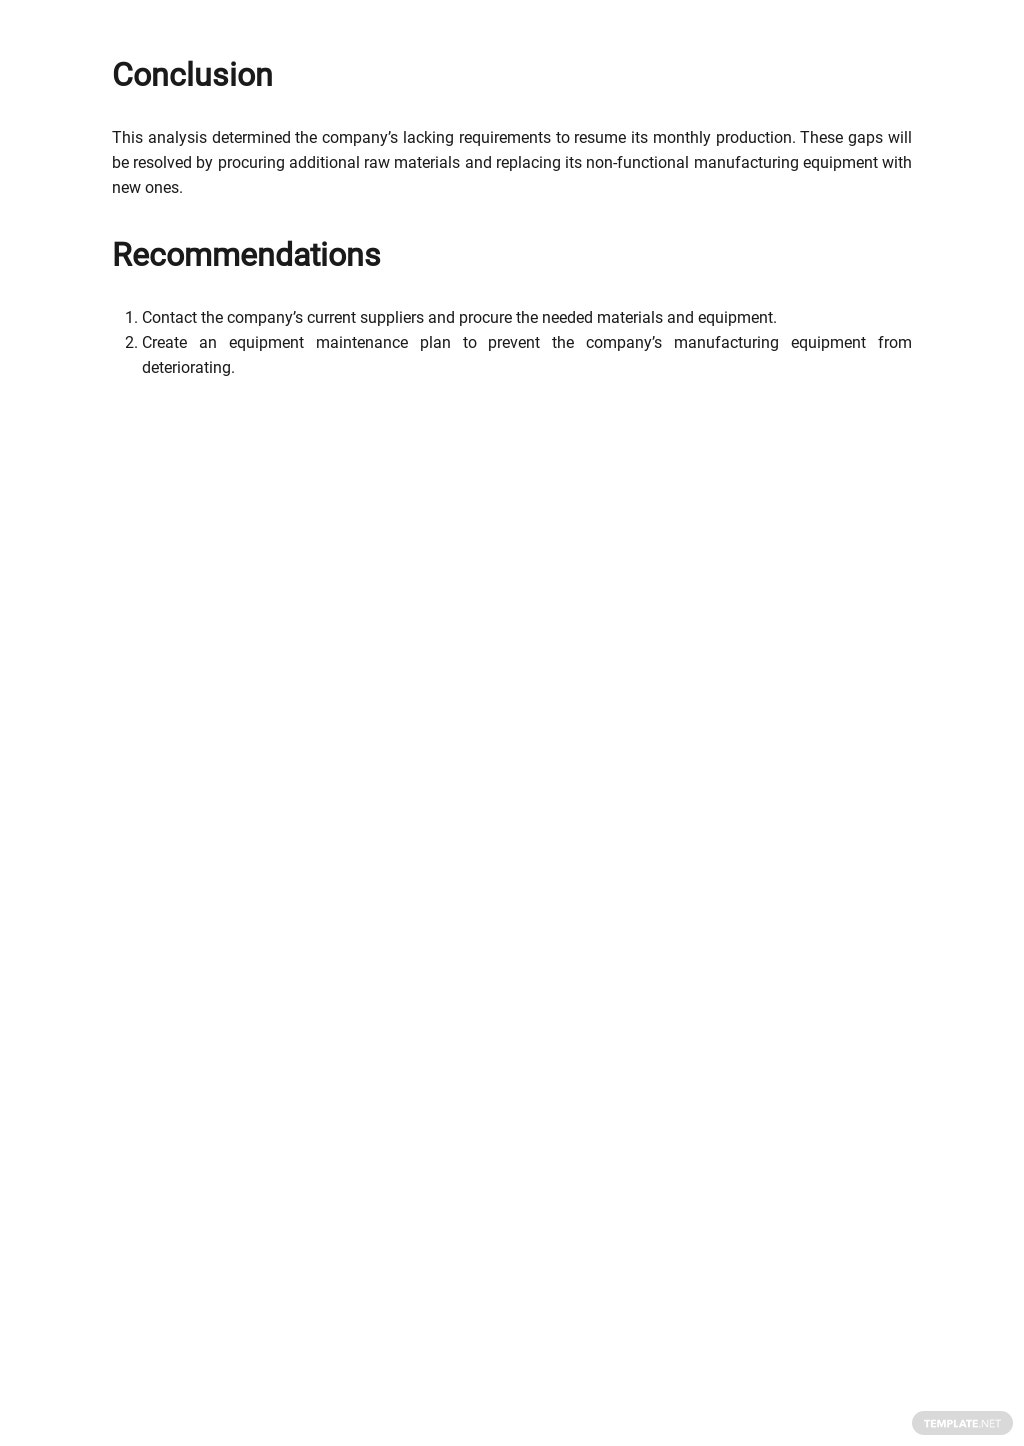 Business Requirements Analysis Template 4.jpe